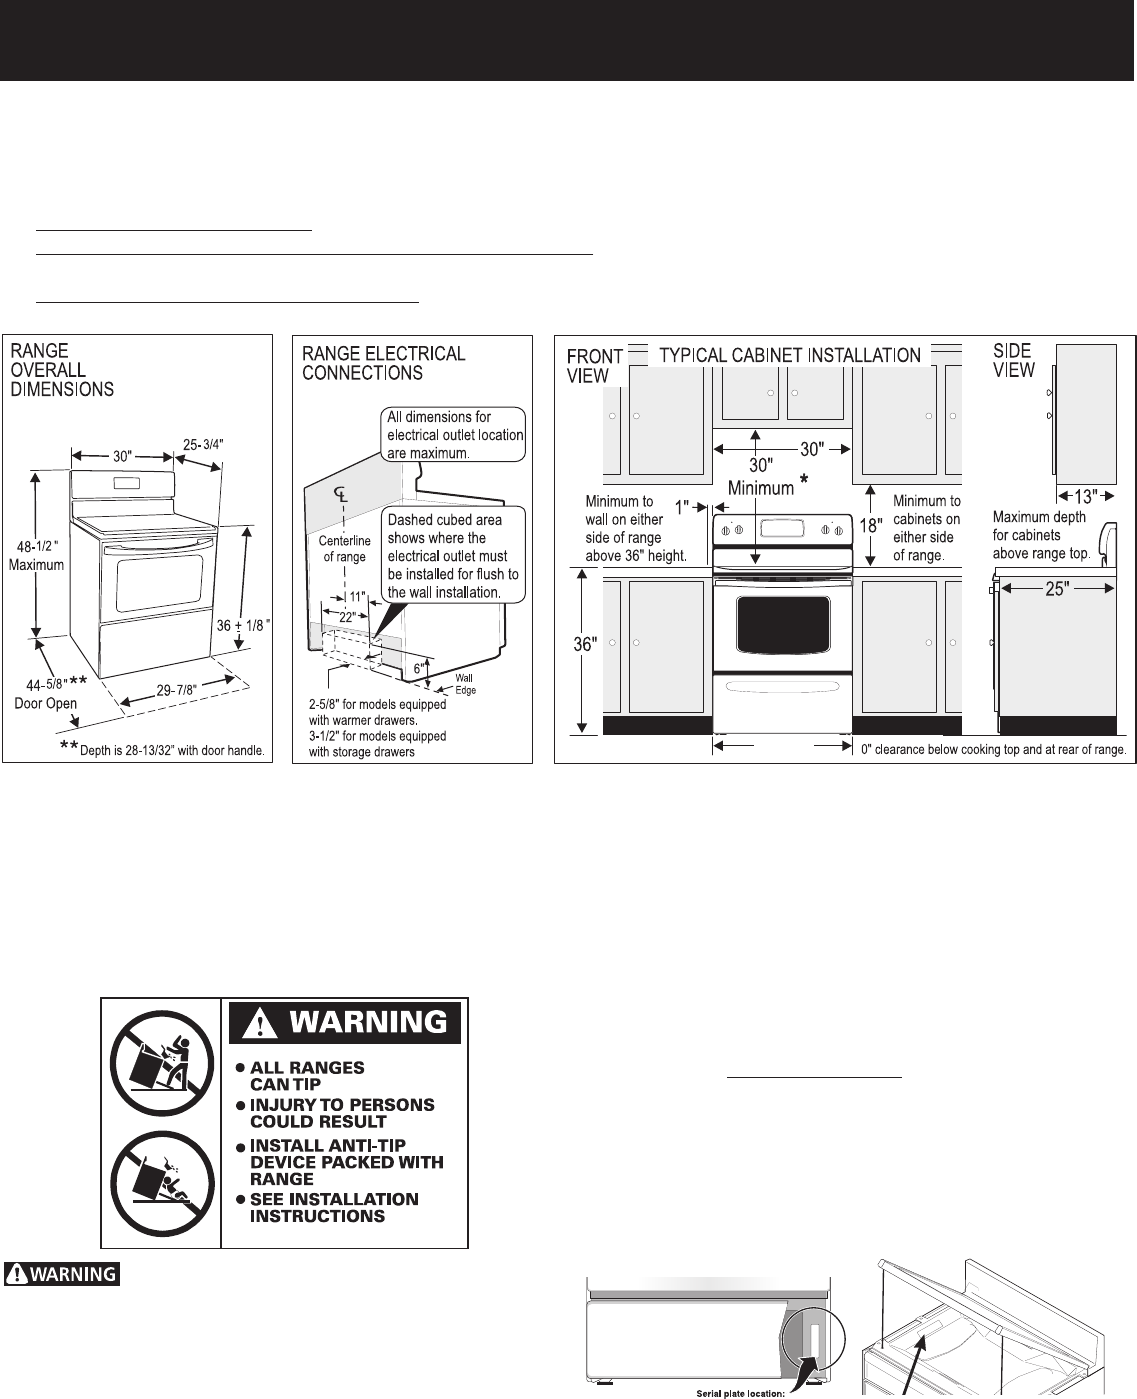 Kitchen Stove Installation Guide: Frigidaire Range 316454905 User Guide